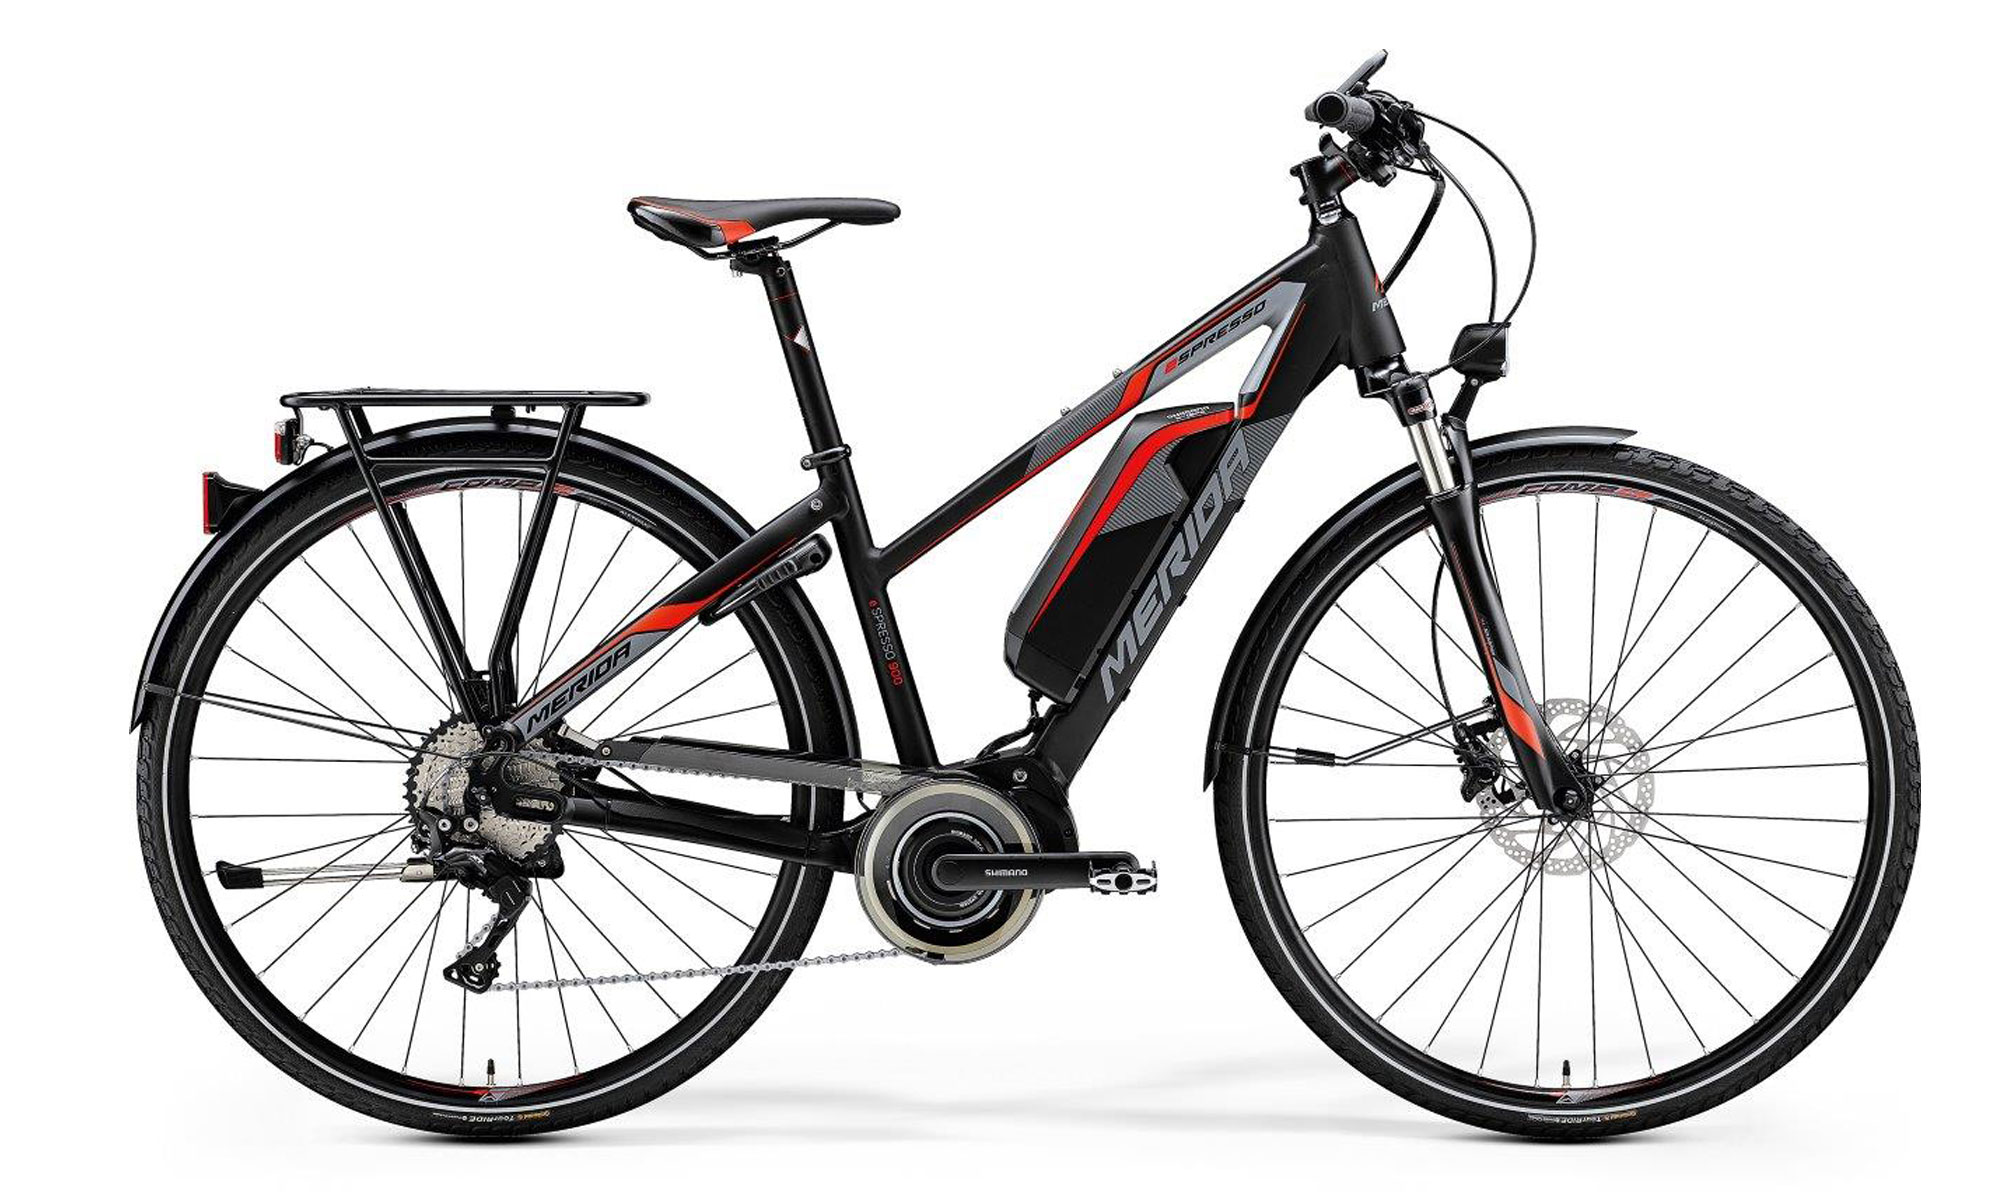 trekking touren ebikes bei der ebike dresden ihr. Black Bedroom Furniture Sets. Home Design Ideas